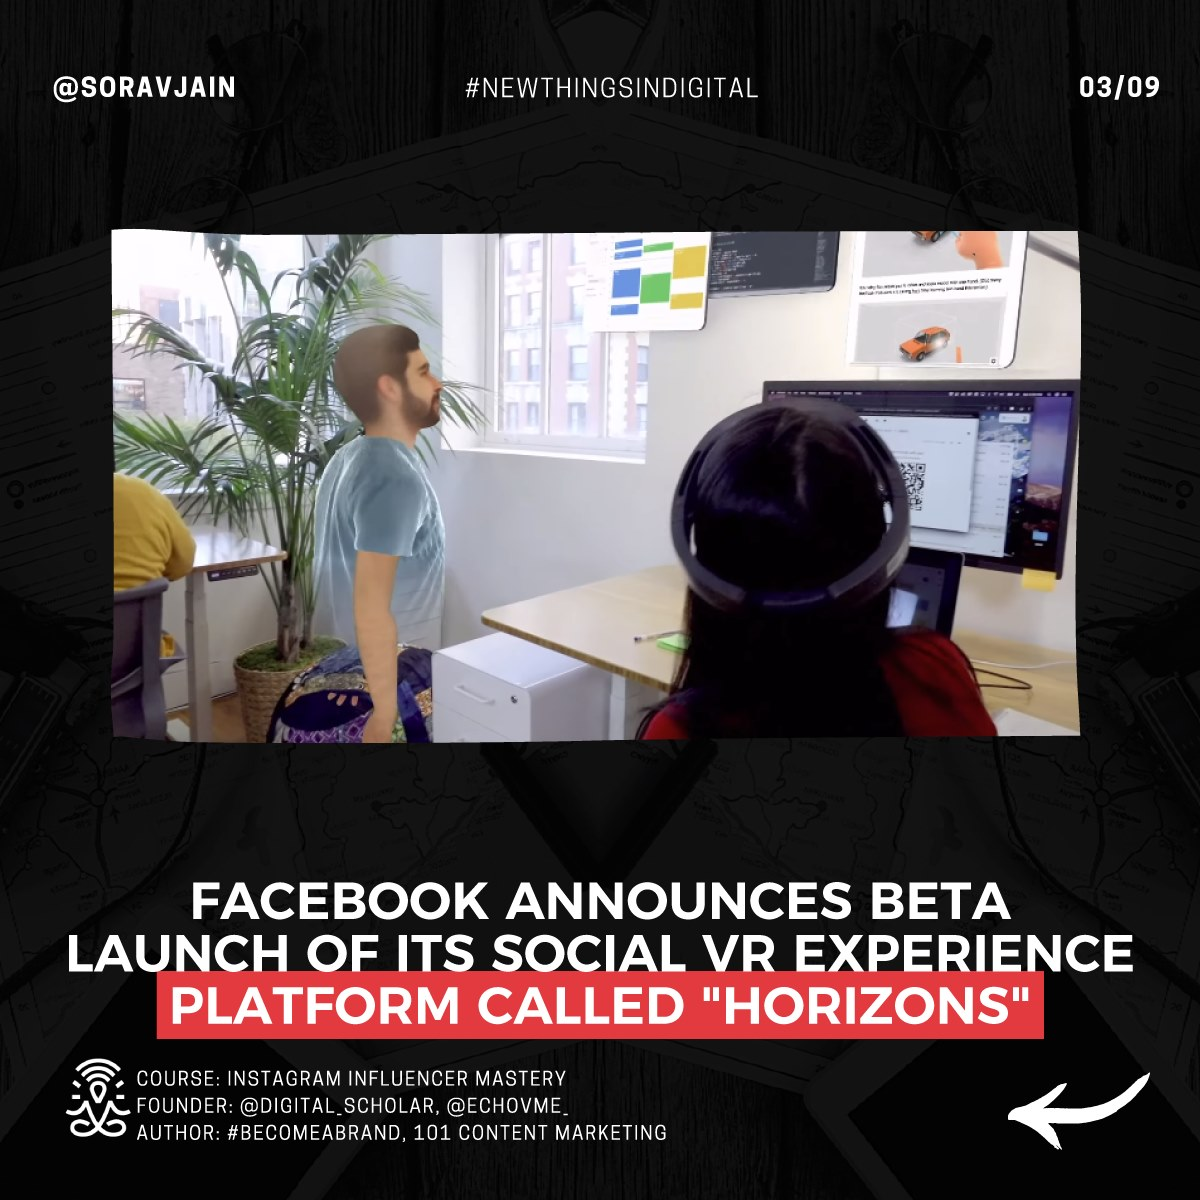 Facebook announces the BETA launch of its social VR experience platform called Horizons.